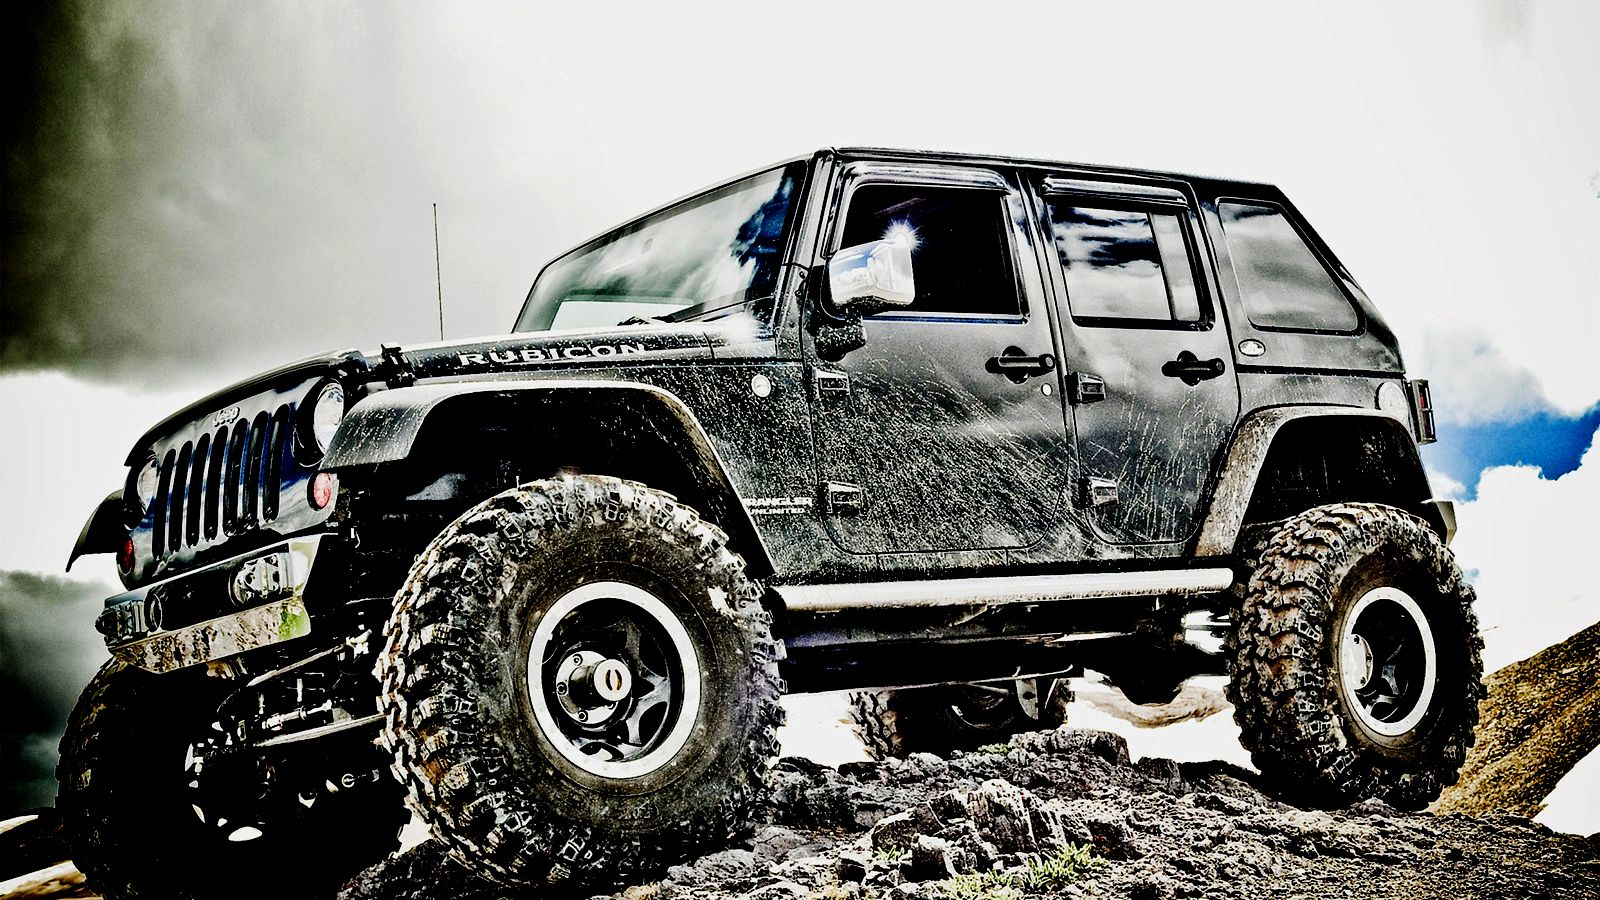 Roading 4x4 Offroad Off Road Wrangler Rubicon Jeep Hd Wallpaper